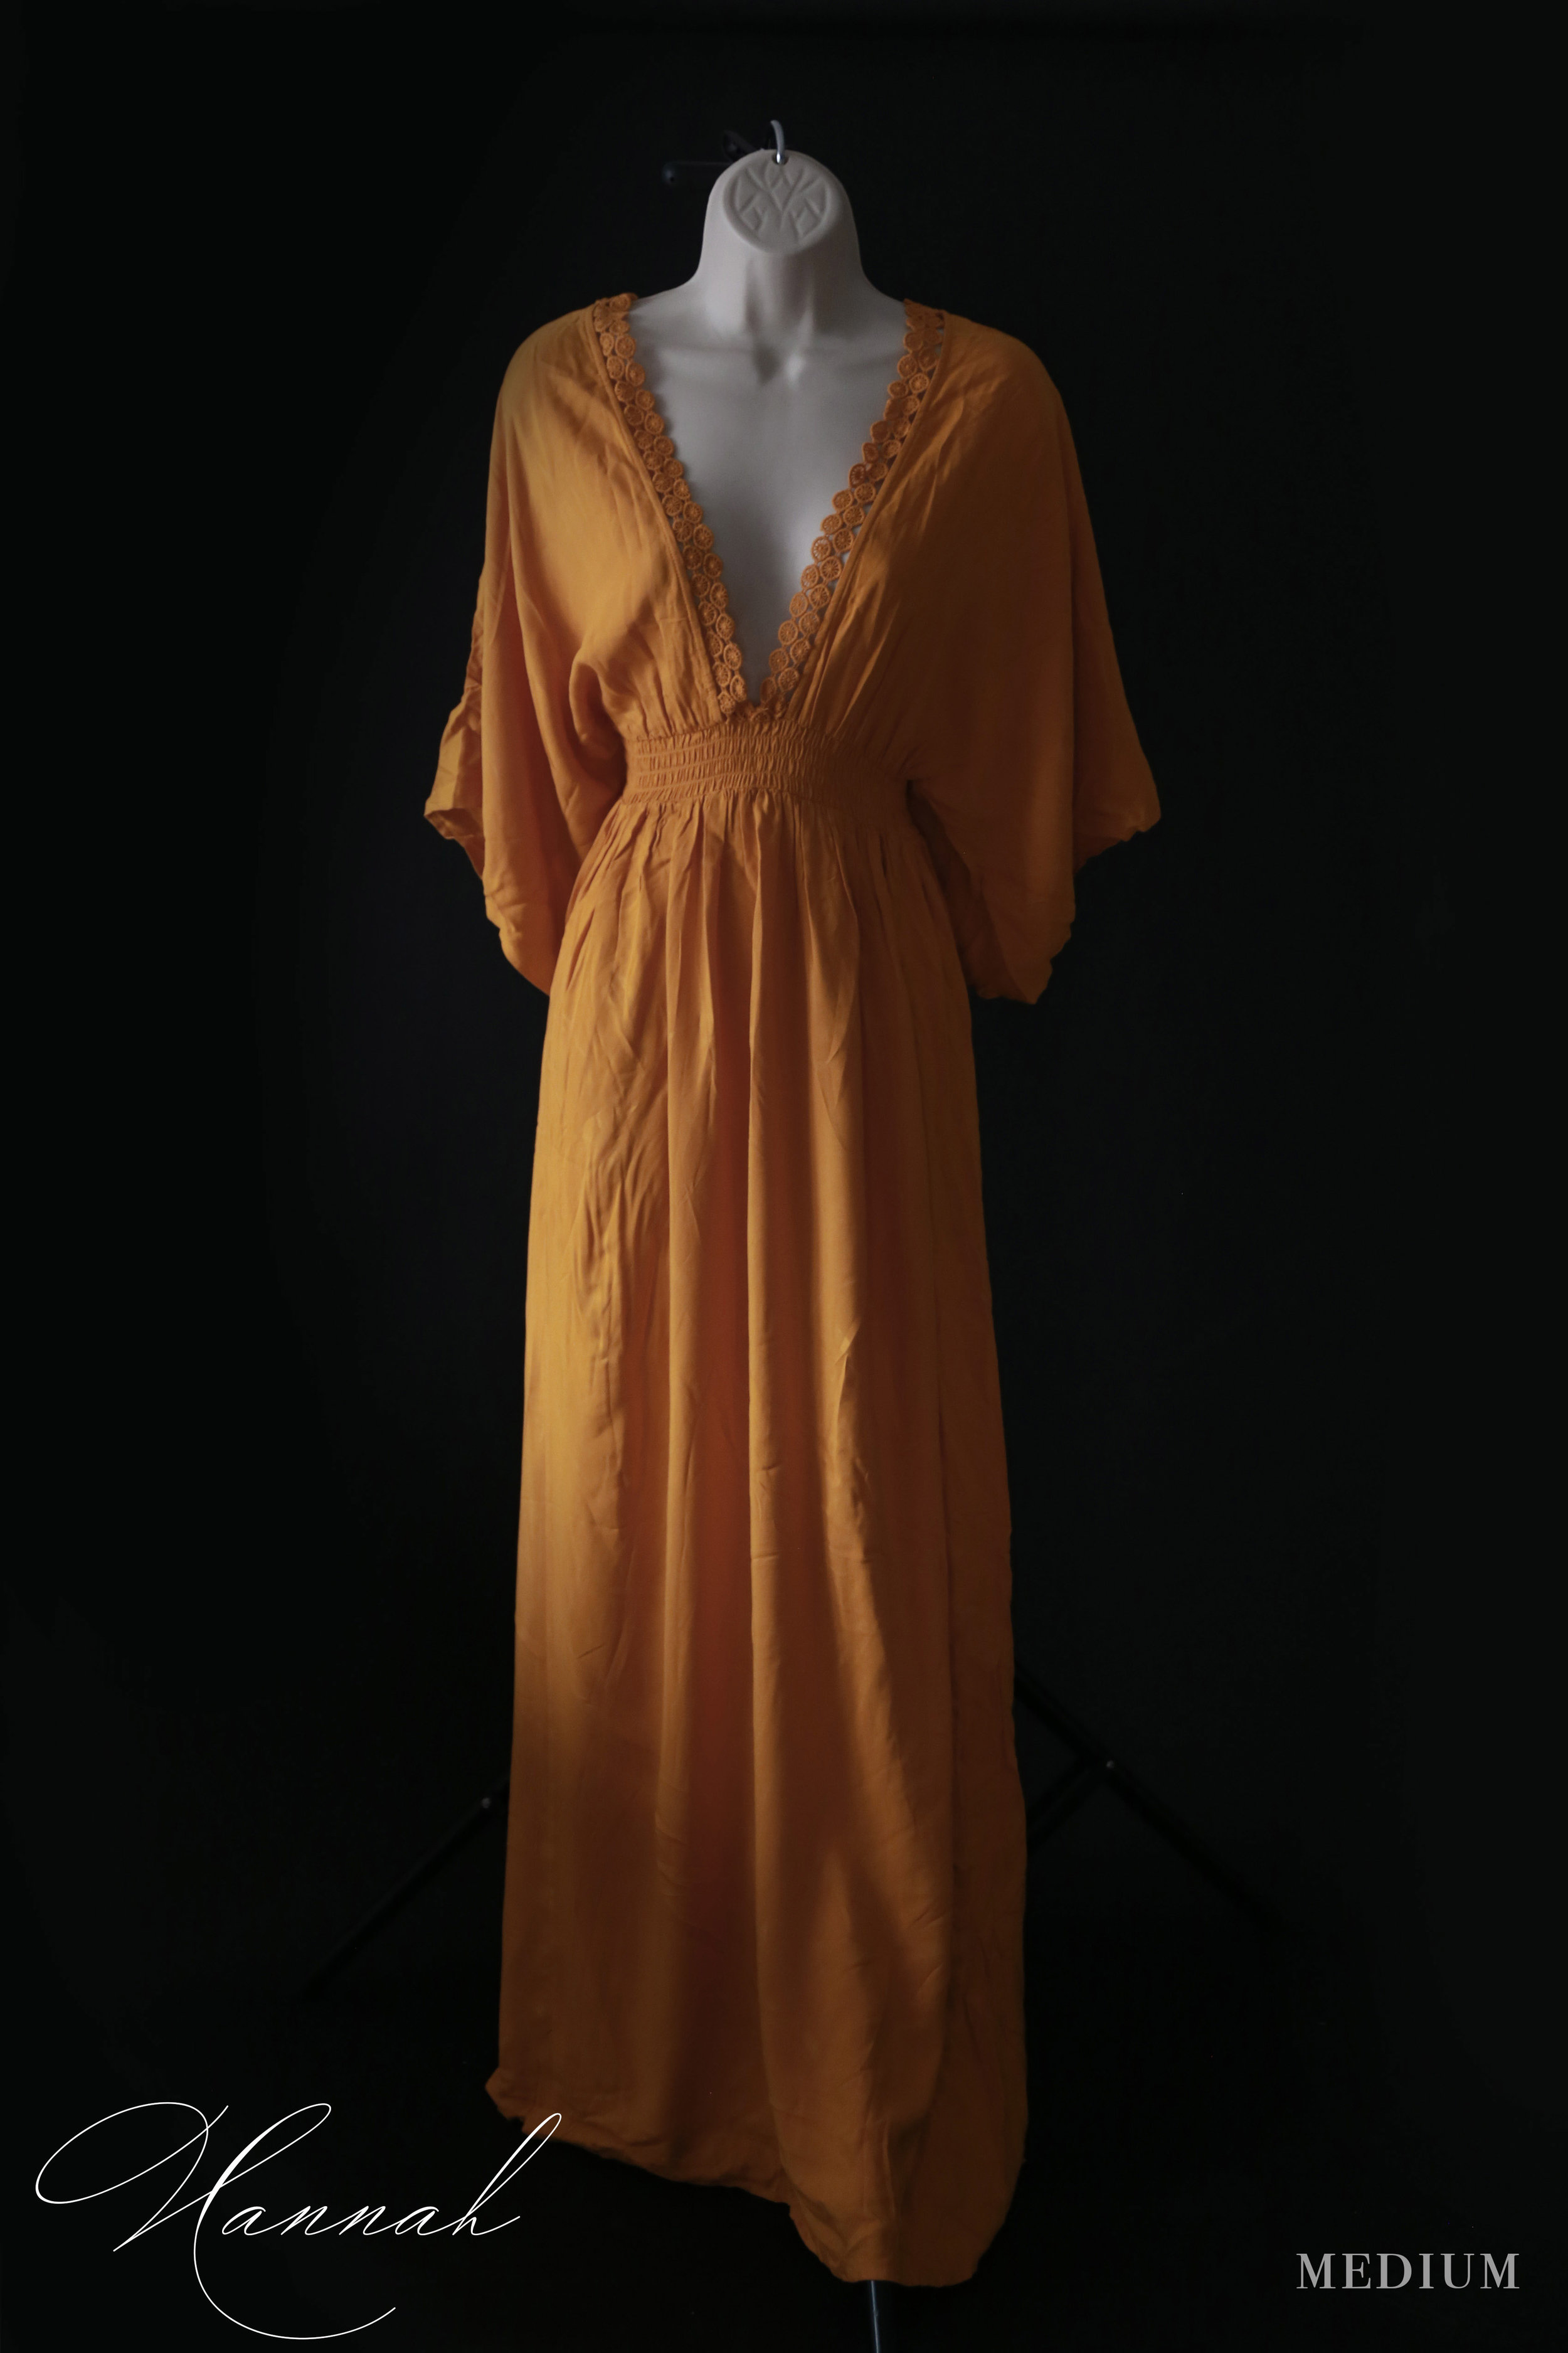 Hannah - MediumKimono style sleeves, empire waist, deep V-neck with crochet trim….this dress would look great on a maternity or non-maternity mom.